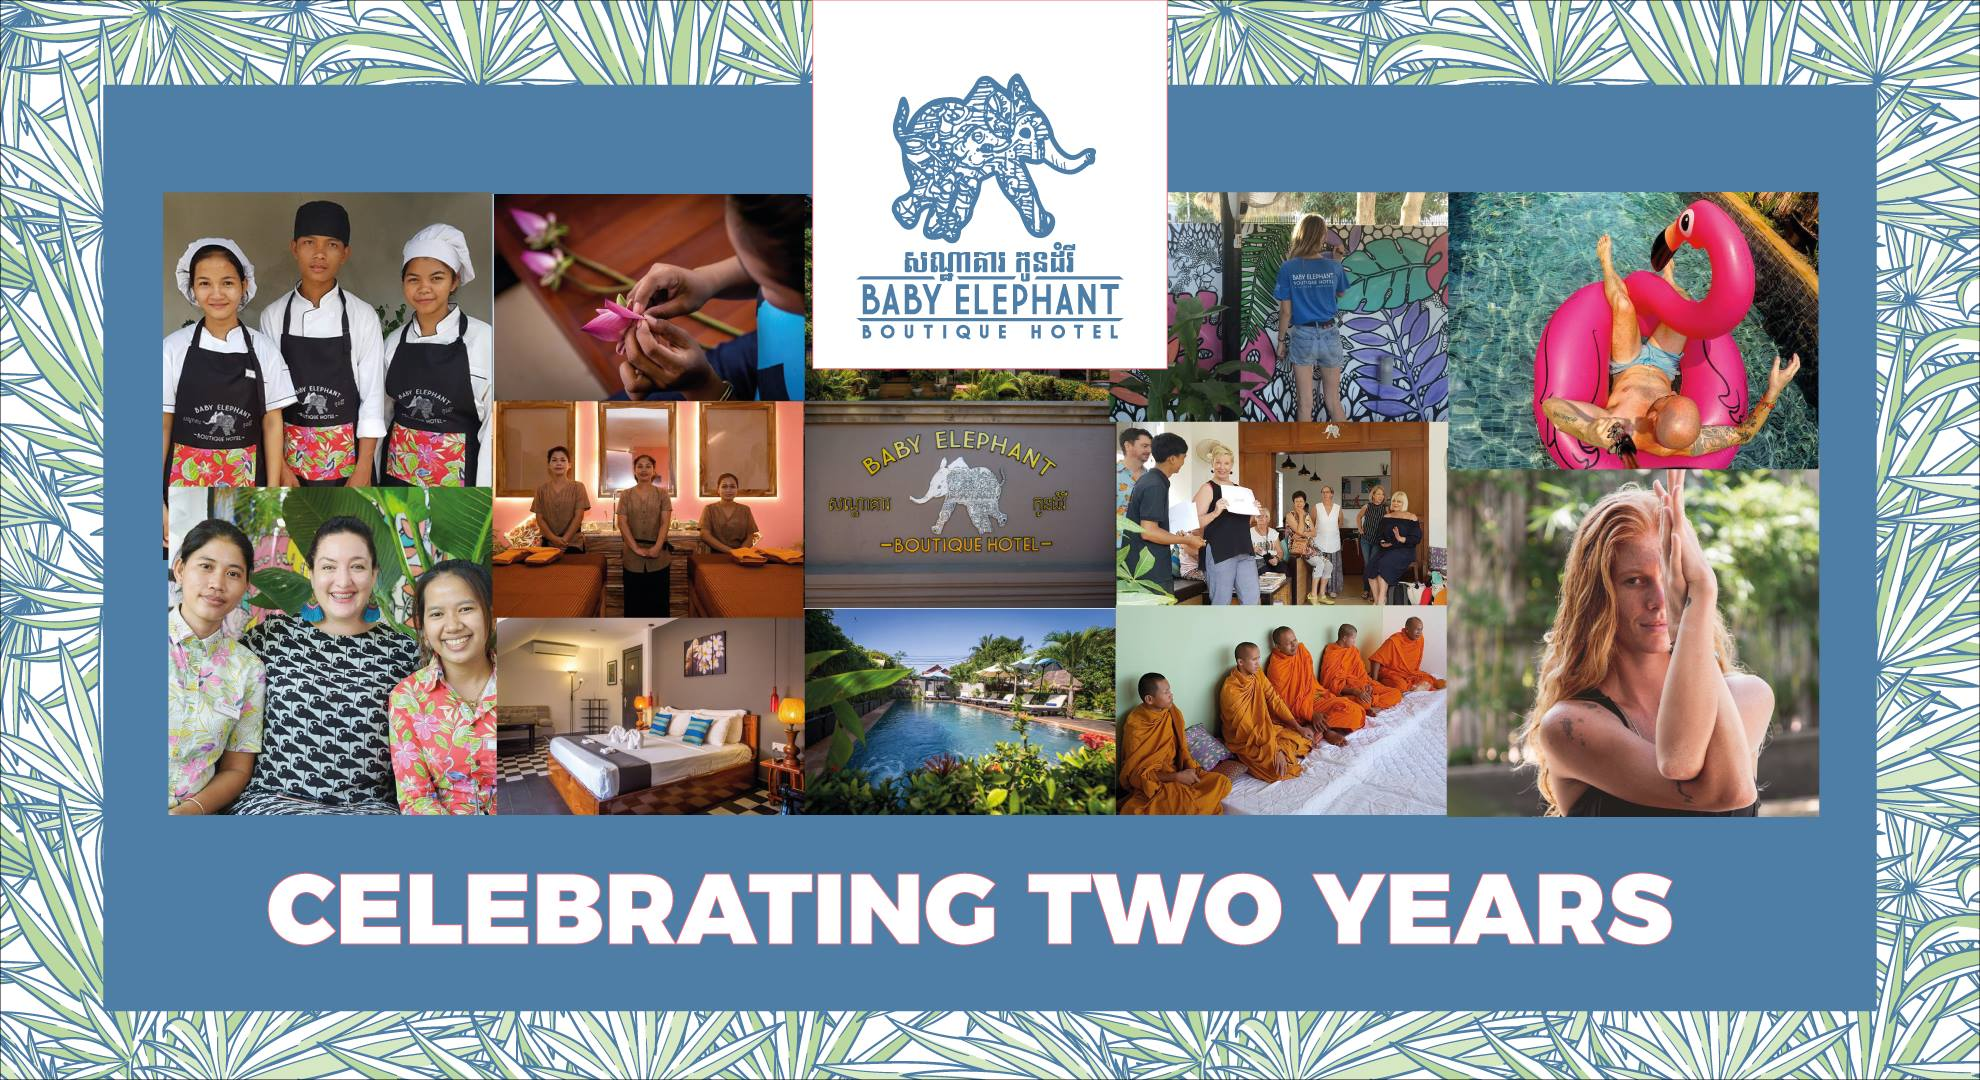 Celebrating two years of Baby Elephant Boutique Hotel in Siem Reap, Cambodia